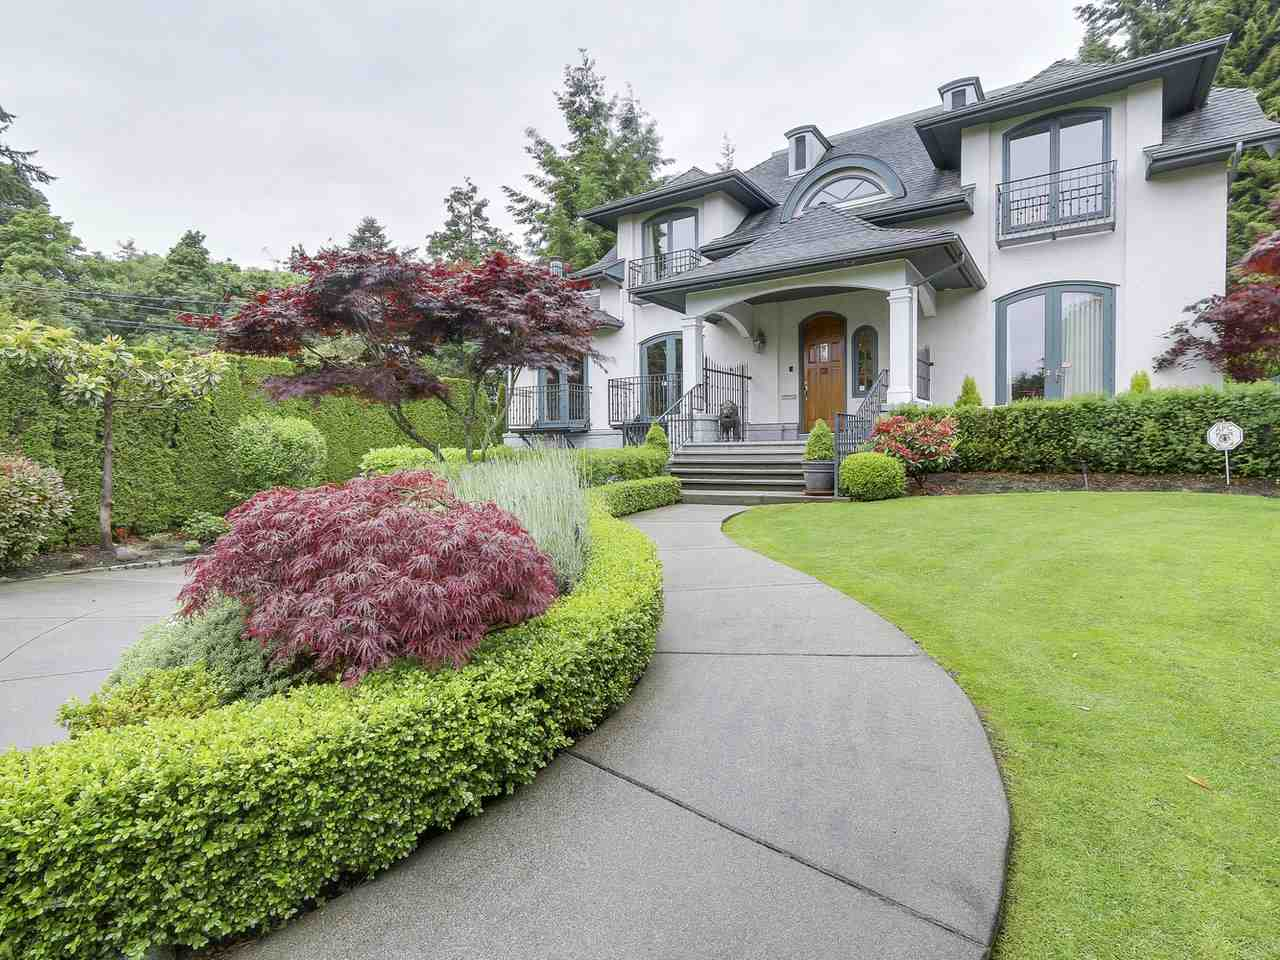 Detached at 3287 W 48TH AVENUE, Vancouver West, British Columbia. Image 1